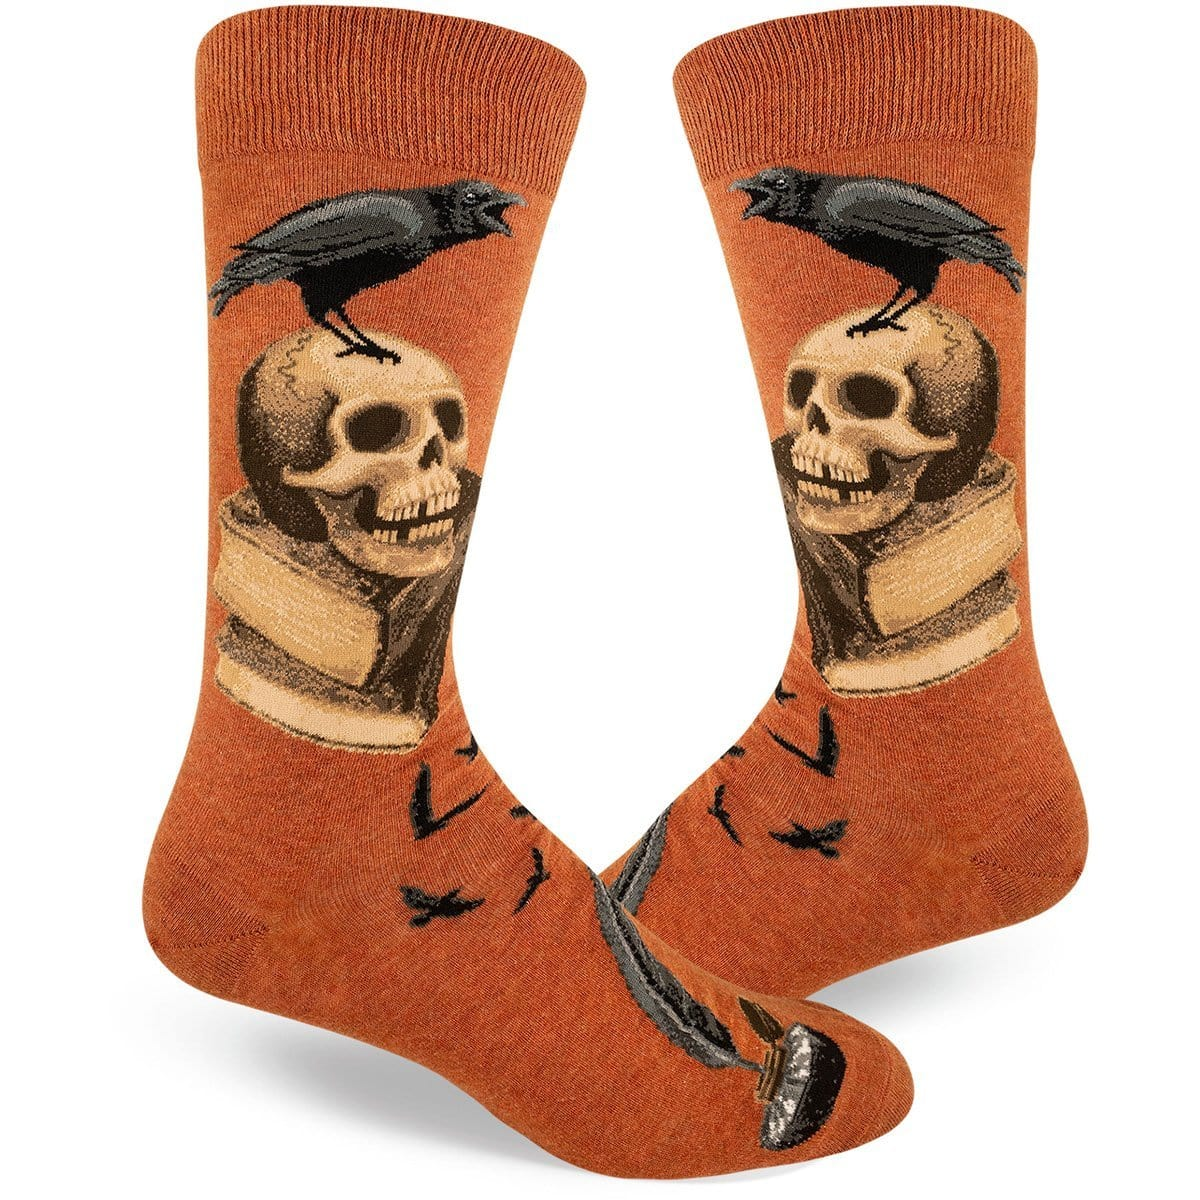 Nevermore Socks - Crew Socks for Men